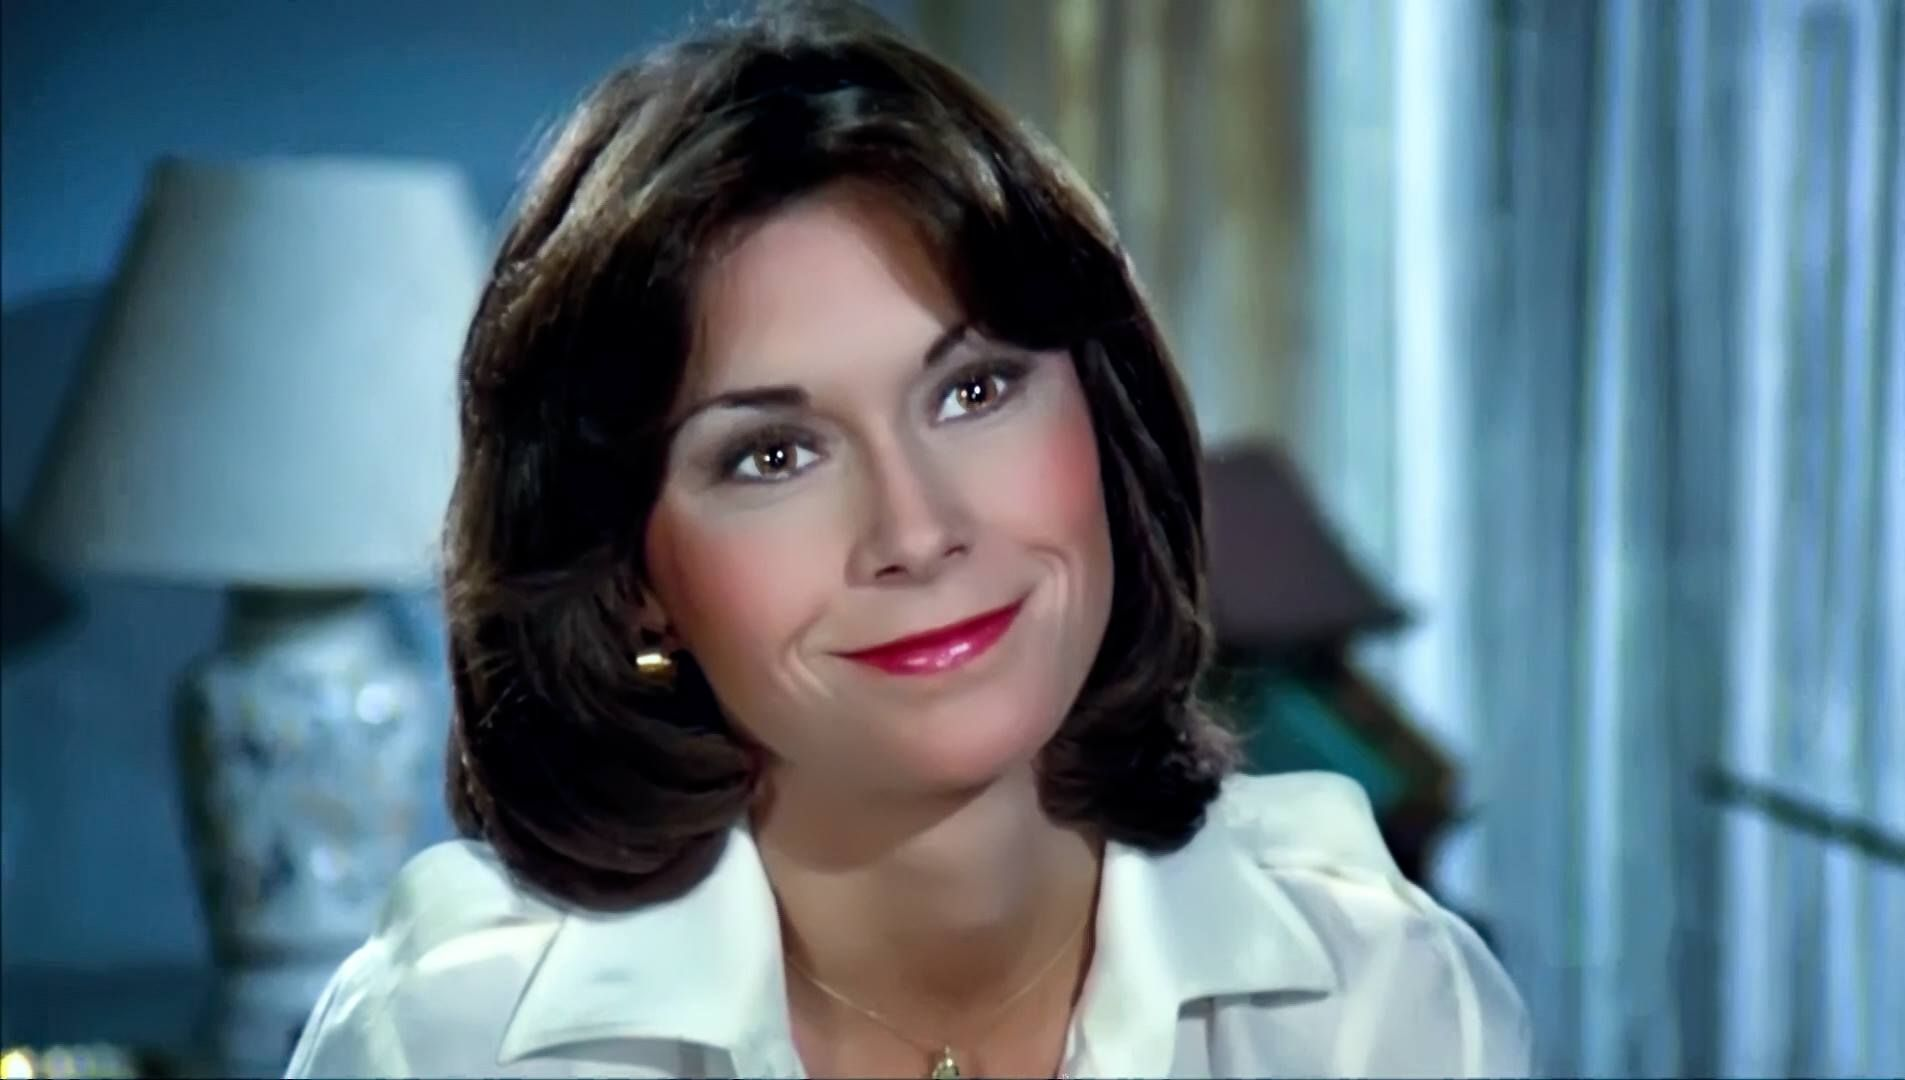 Pictures of Kate Jackson - Pictures Of Celebrities | Kate ...